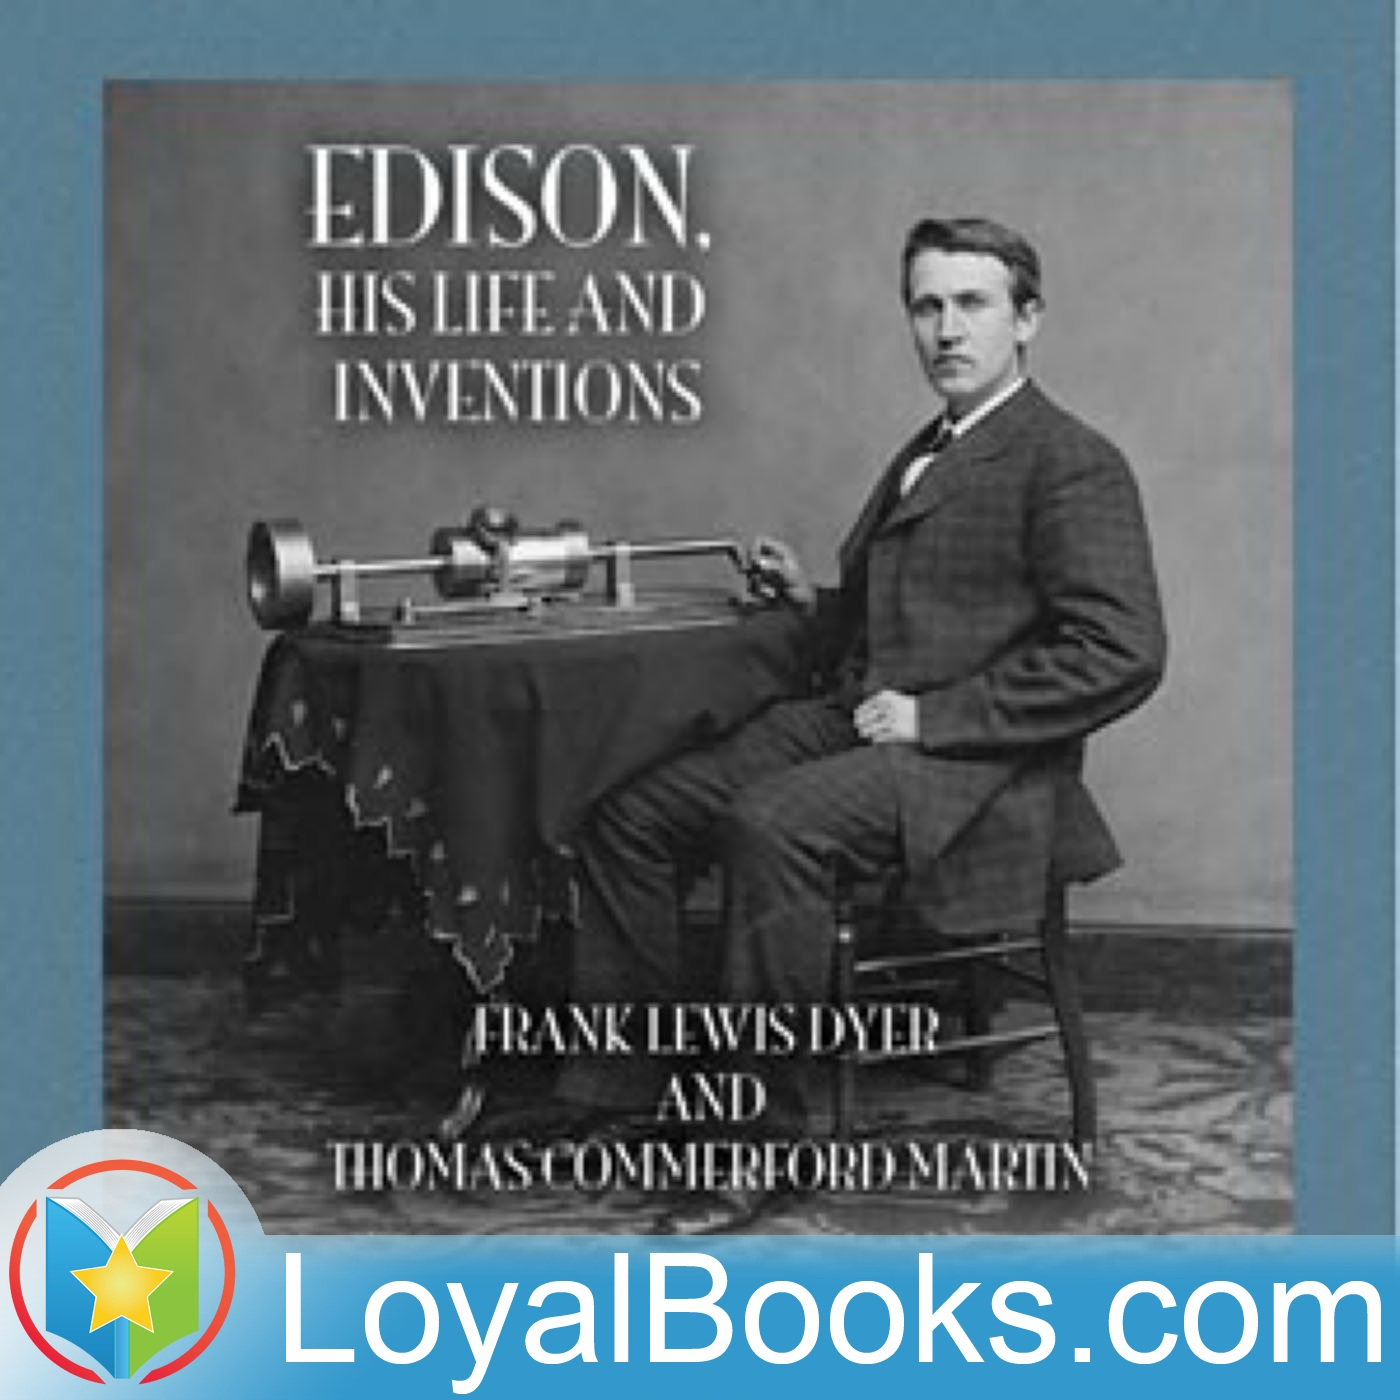 Edison, His Life and Inventions by Frank Lewis Dyer and Thomas Commerford Martin  